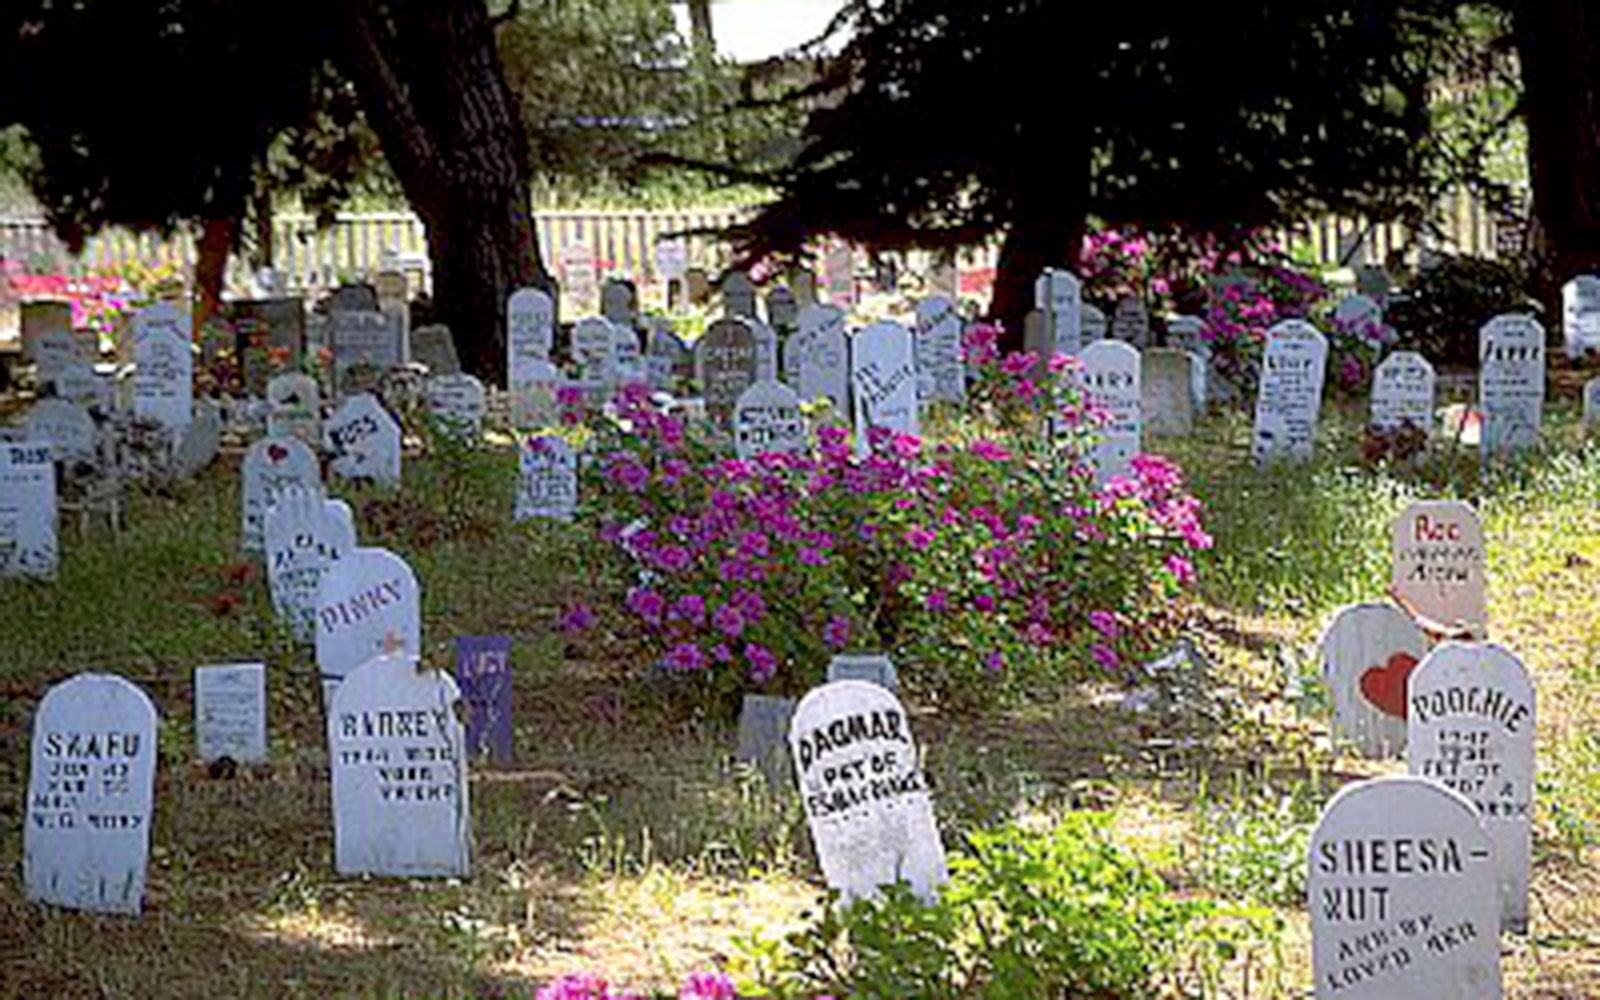 Presidio Pet Cemetery in San Francisco, California